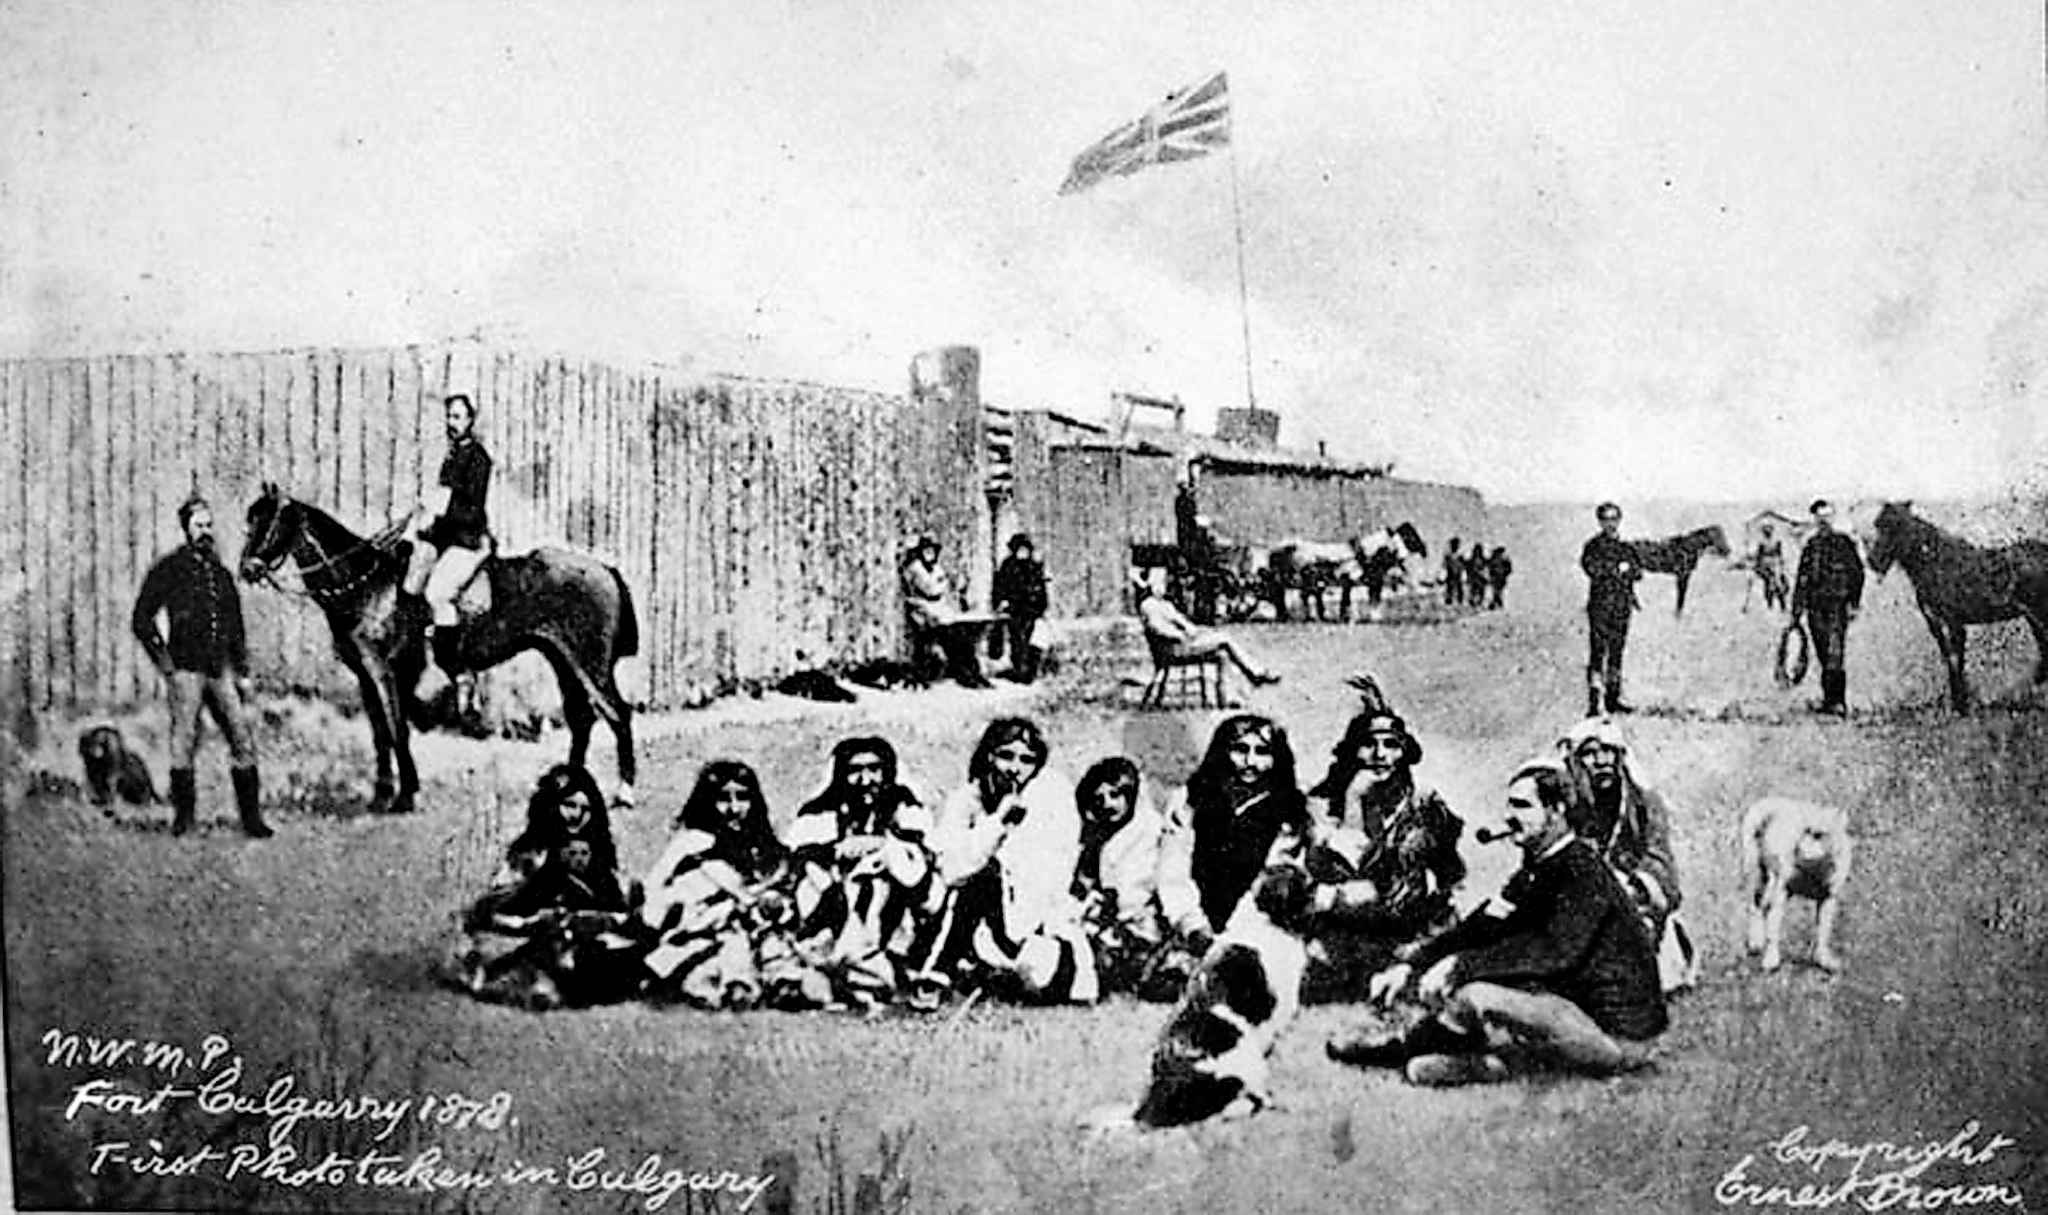 North-West Mounted police and members of the Blackfoot First Nation at Fort Calgary, 1878. (Library and Archives Canada)